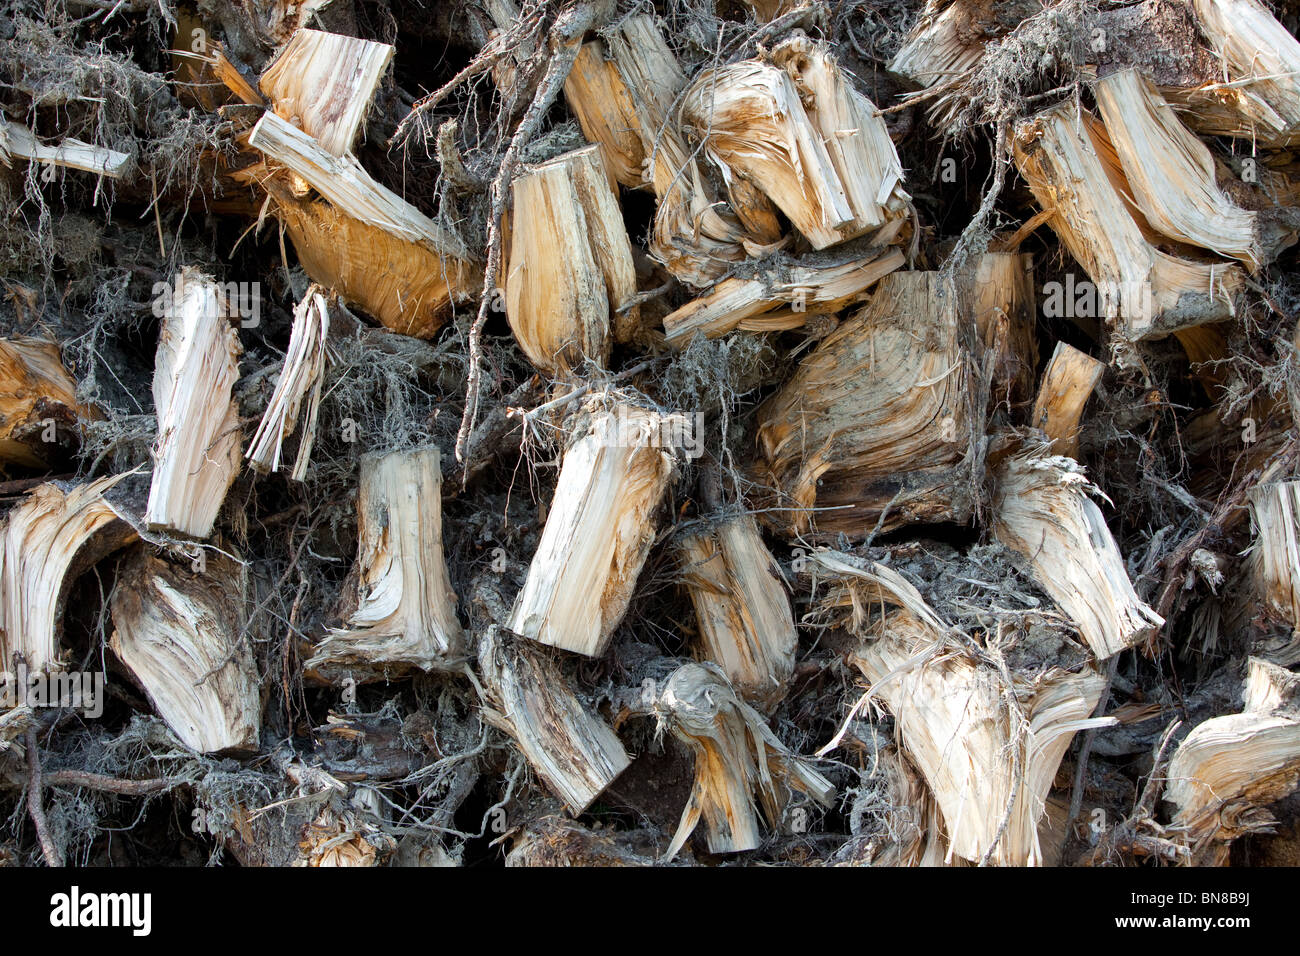 spruce stumps to be burned in energy plant, Finland - Stock Image